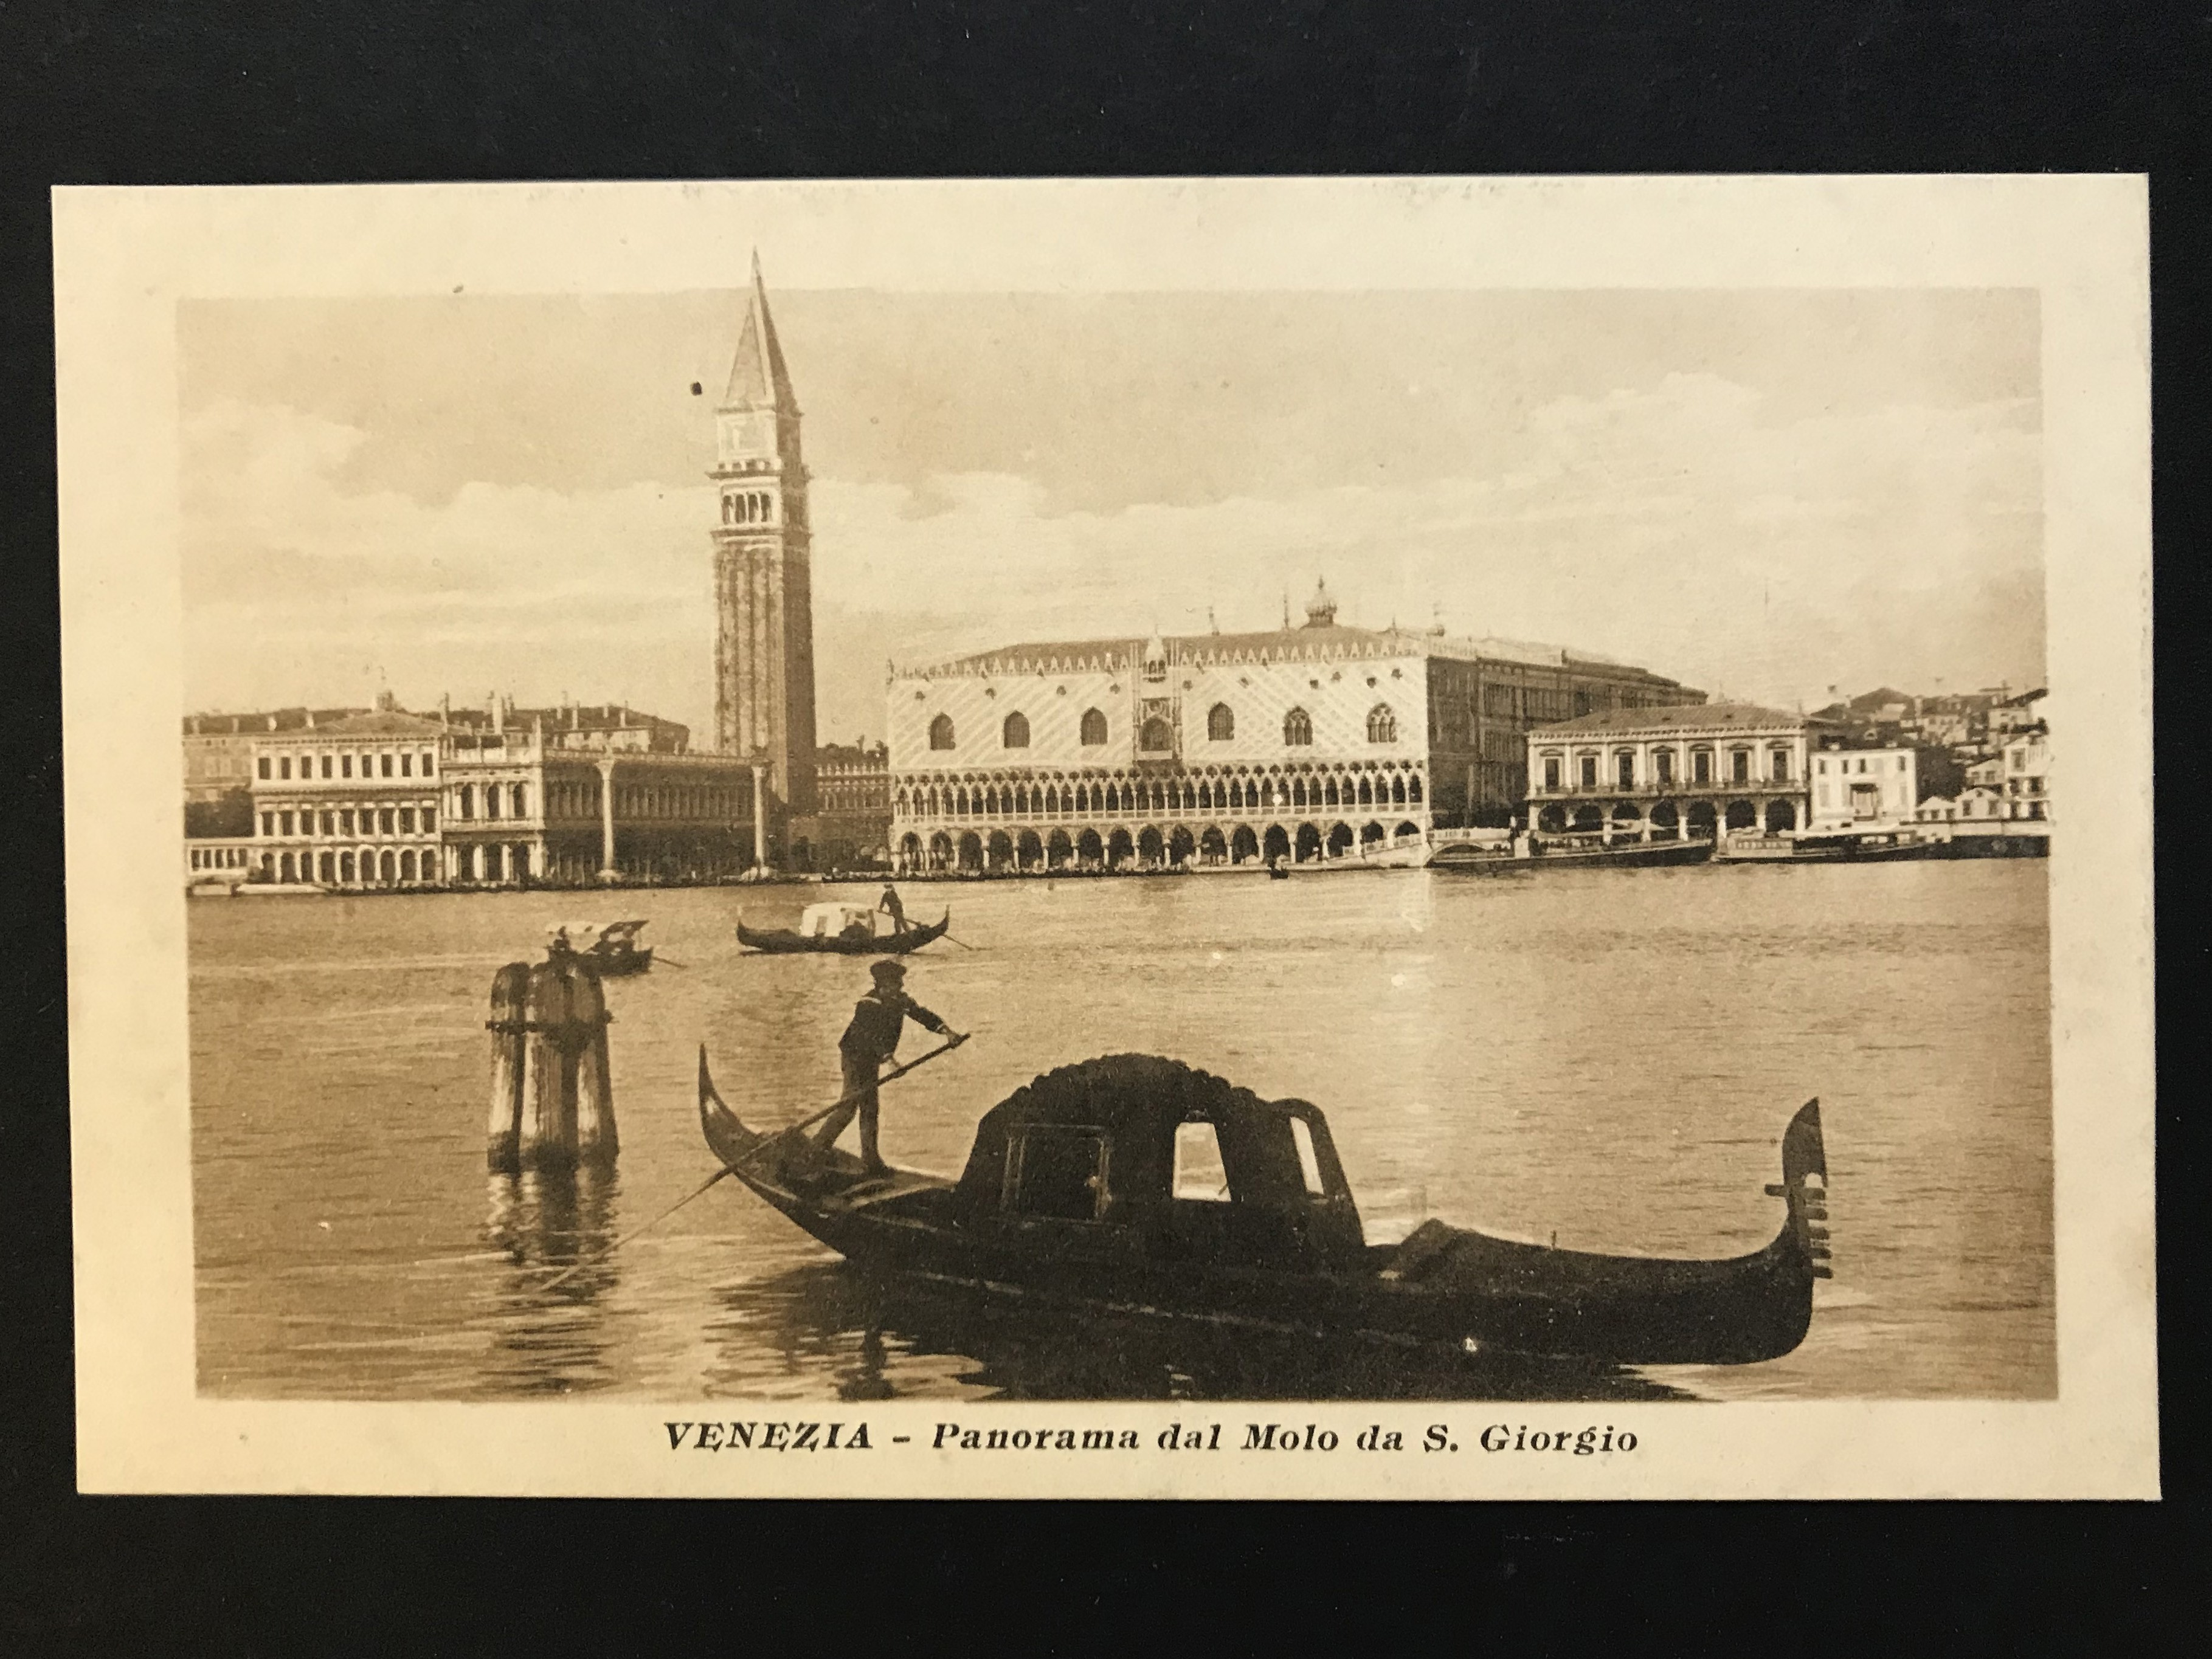 SELECTION OF VENICE RELATED POSTCARDS - Image 48 of 53